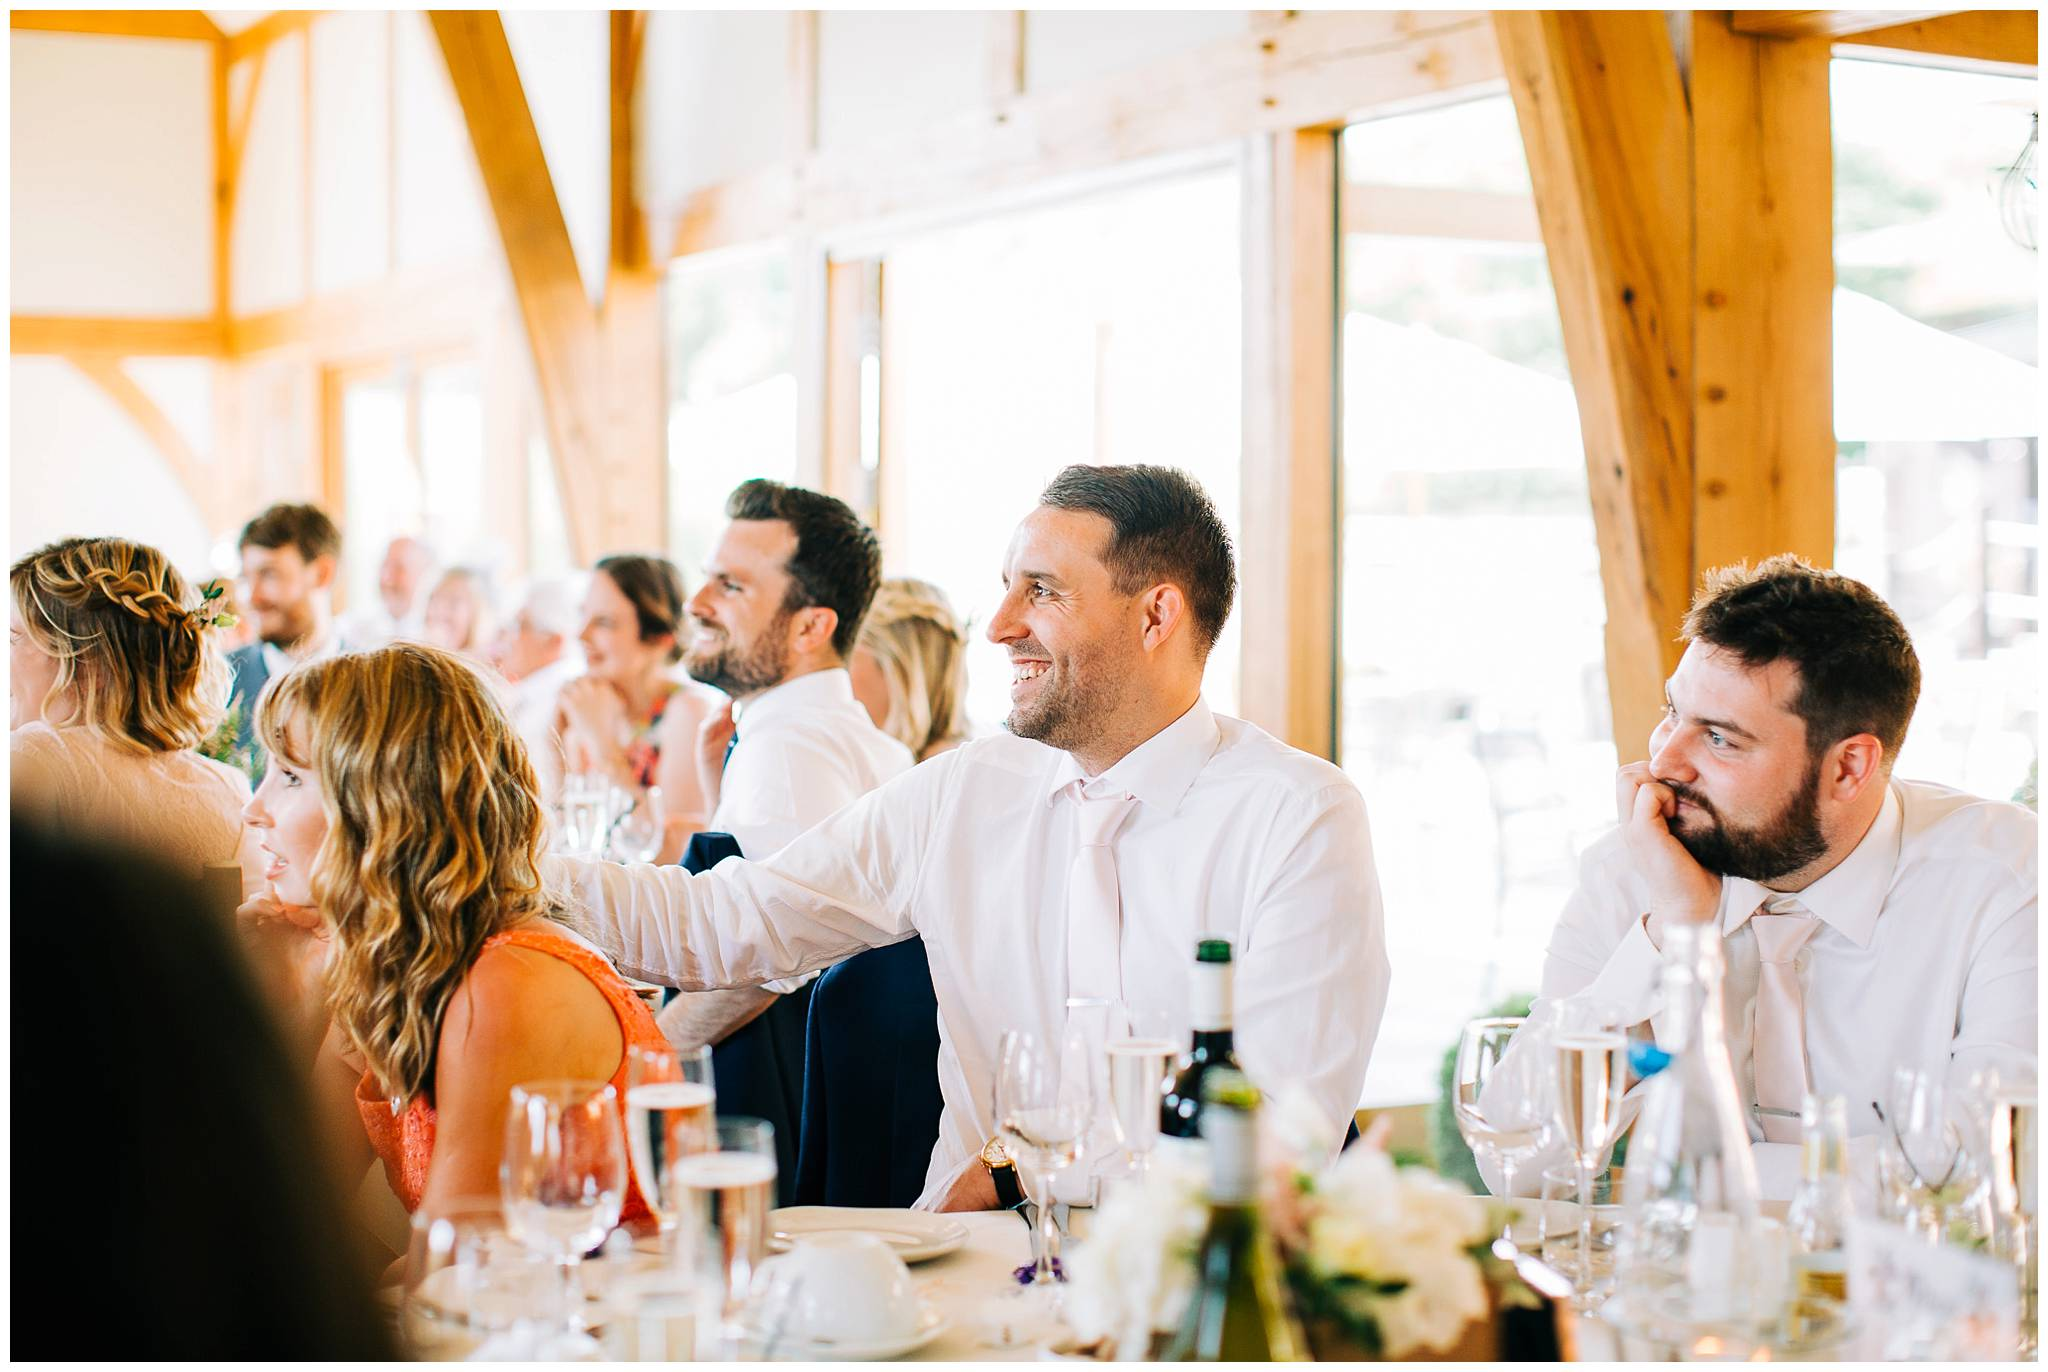 wedding guests at table laughing and smiling during speeches